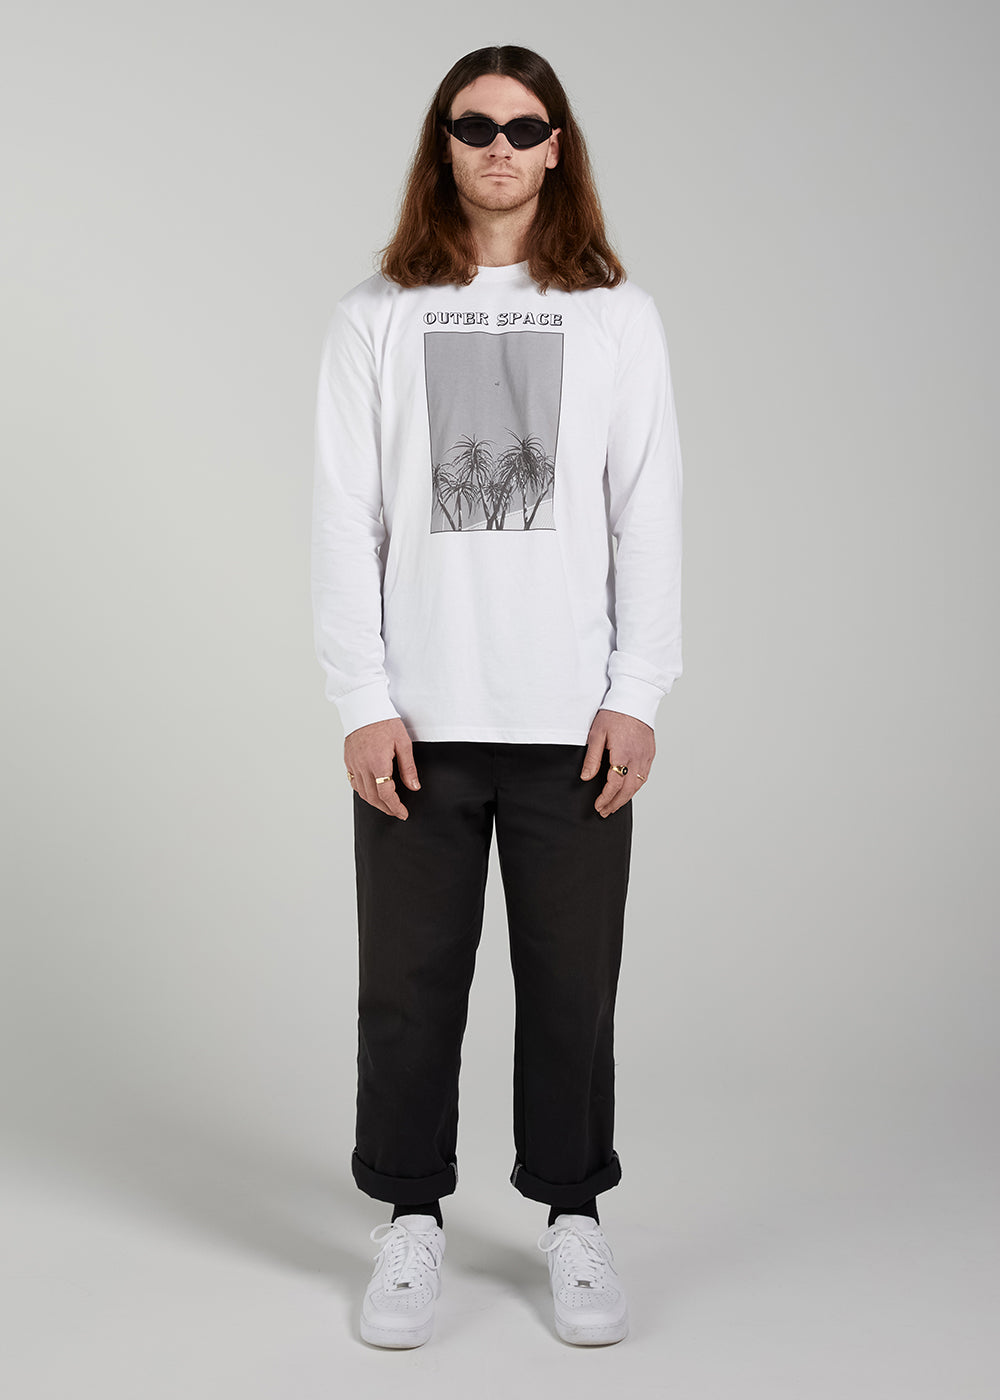 100% Cotton, screen printed mens t-shirt by Lucie Marquis. Photo Auckland, New Zealand.